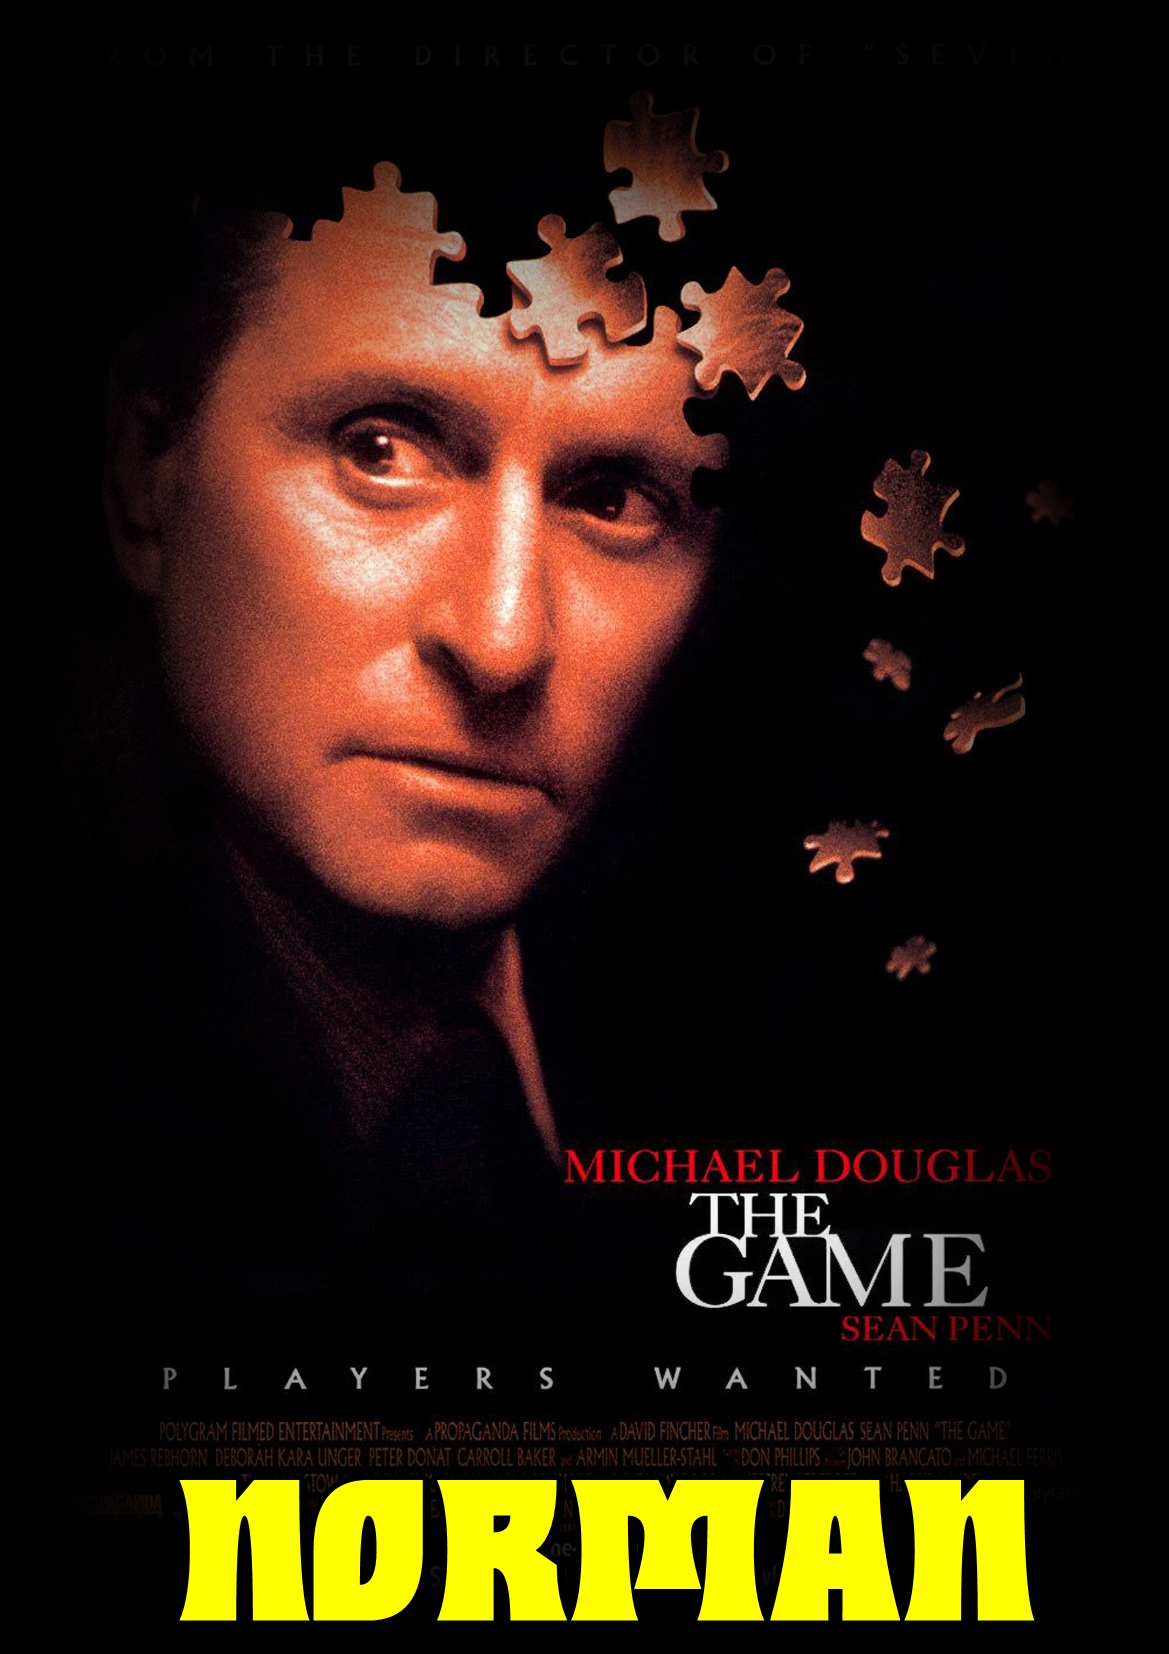 Gra / The Game (1997) [1080p] [BRRip] [XviD] [AC3-Norman] [Lektor PL]